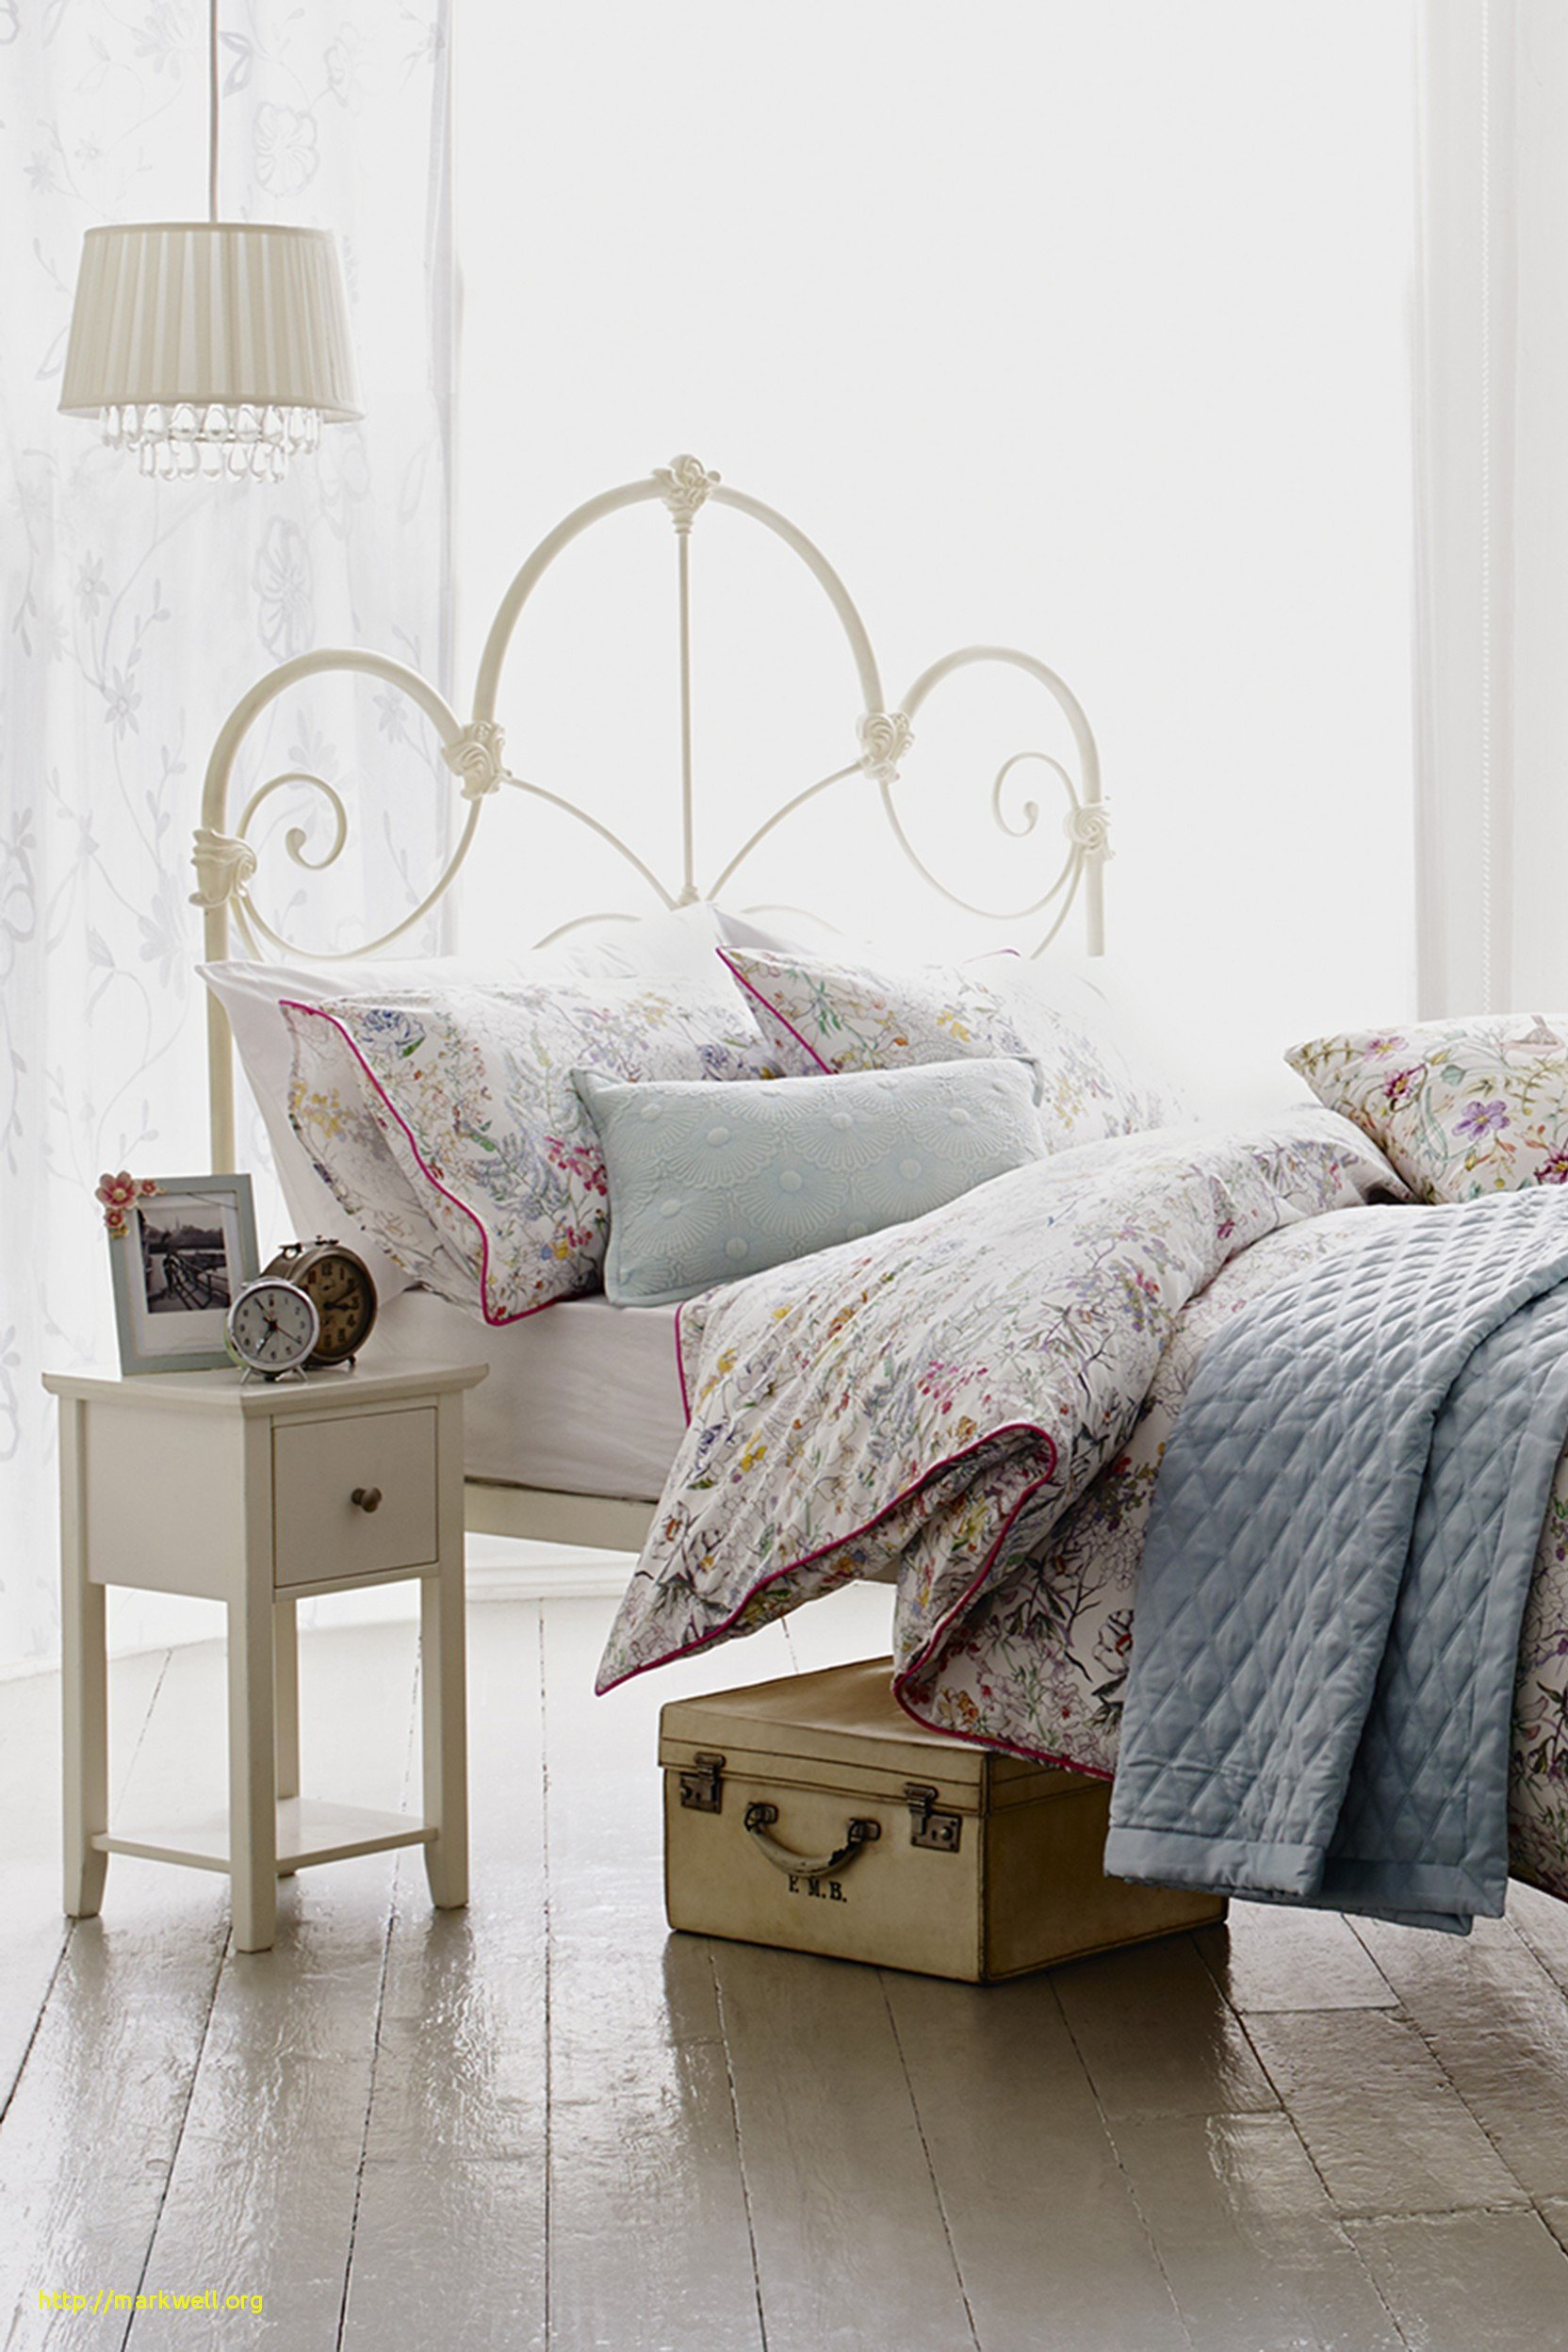 Where to Buy Bedroom Furniture Fresh Elegant Cheap Bedroom Chairs